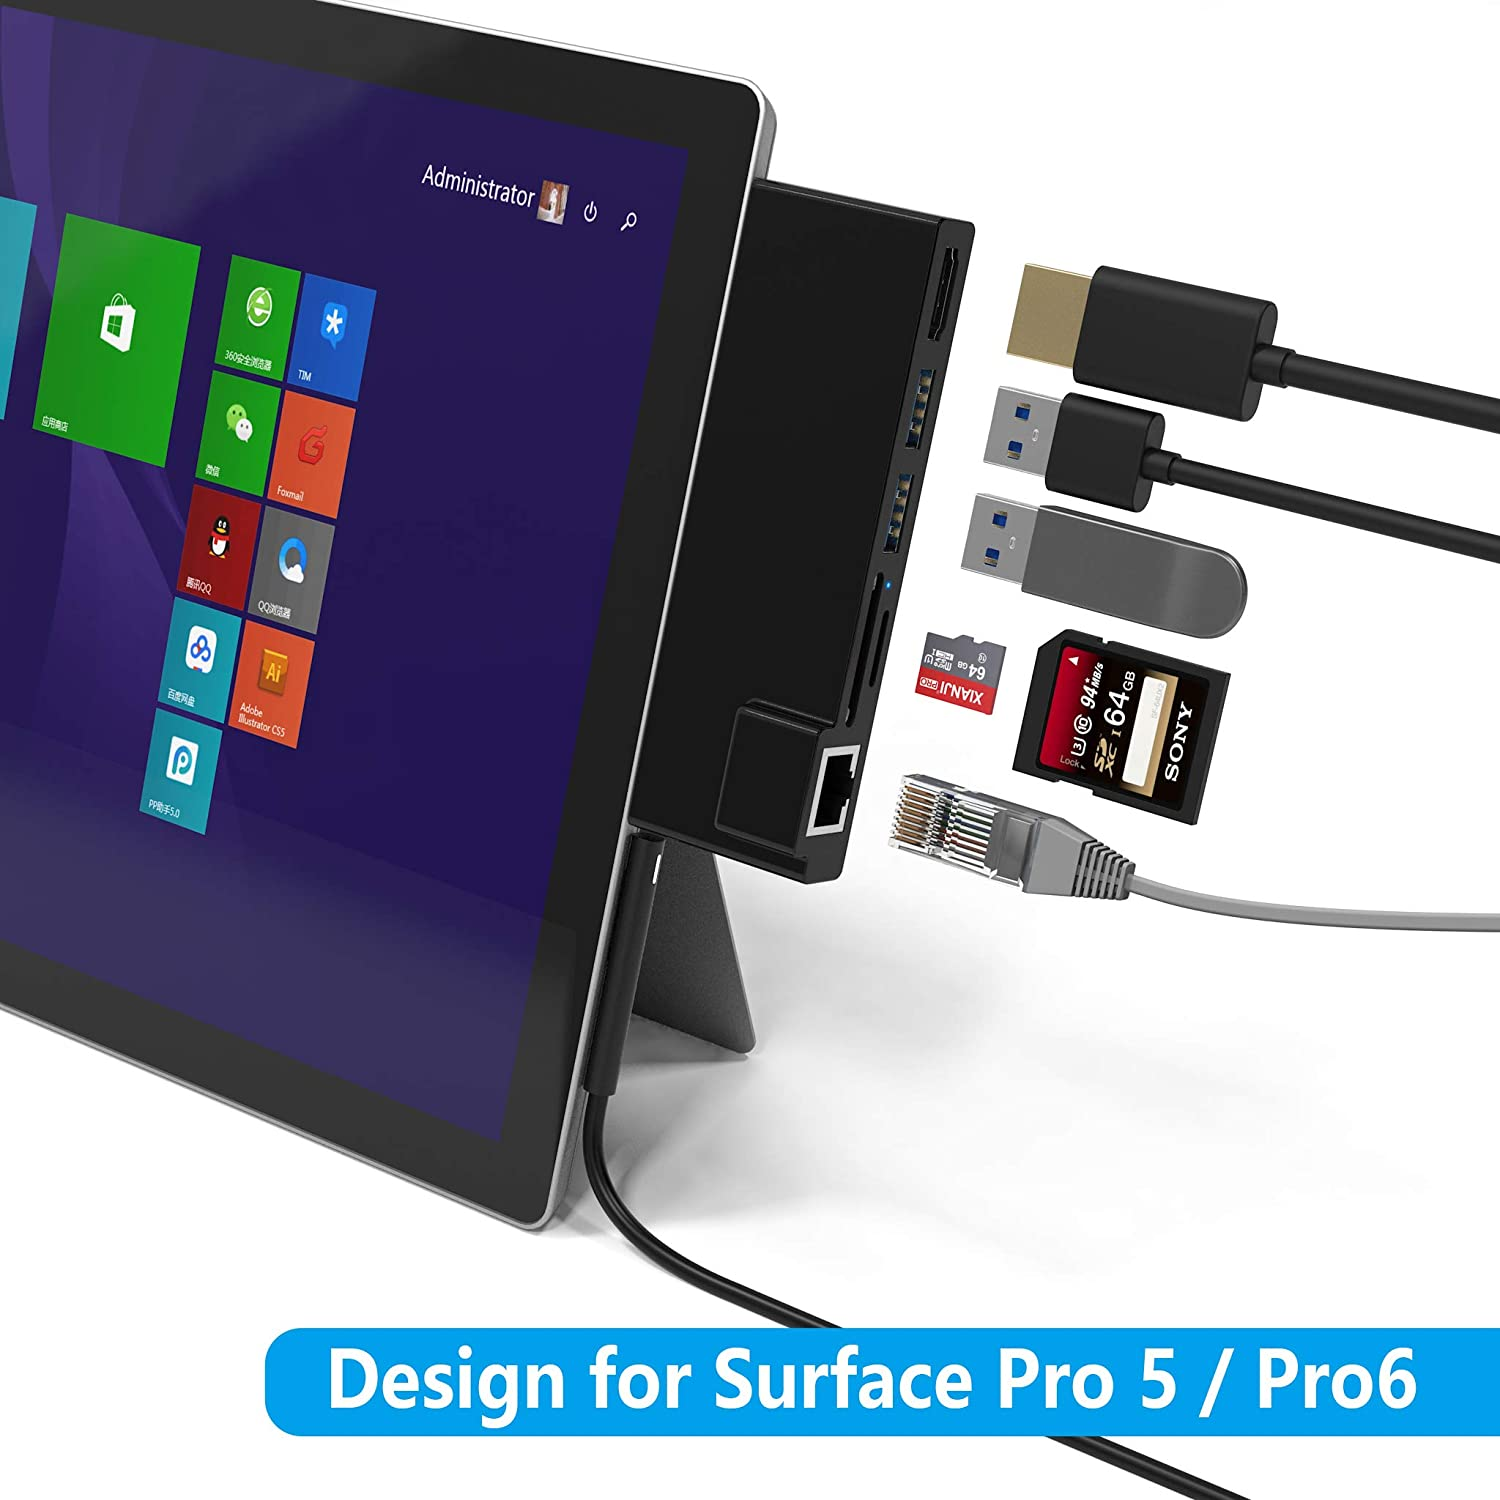 Cateck Microsoft Surface Pro 4 USB 3.0 Hub Docking Station with 4K HDMI 3 x USB 3.0 Ports SD//Micro SD Card Reader for the 4th Generation Surface Pro 4 2015 microsoft surface dock